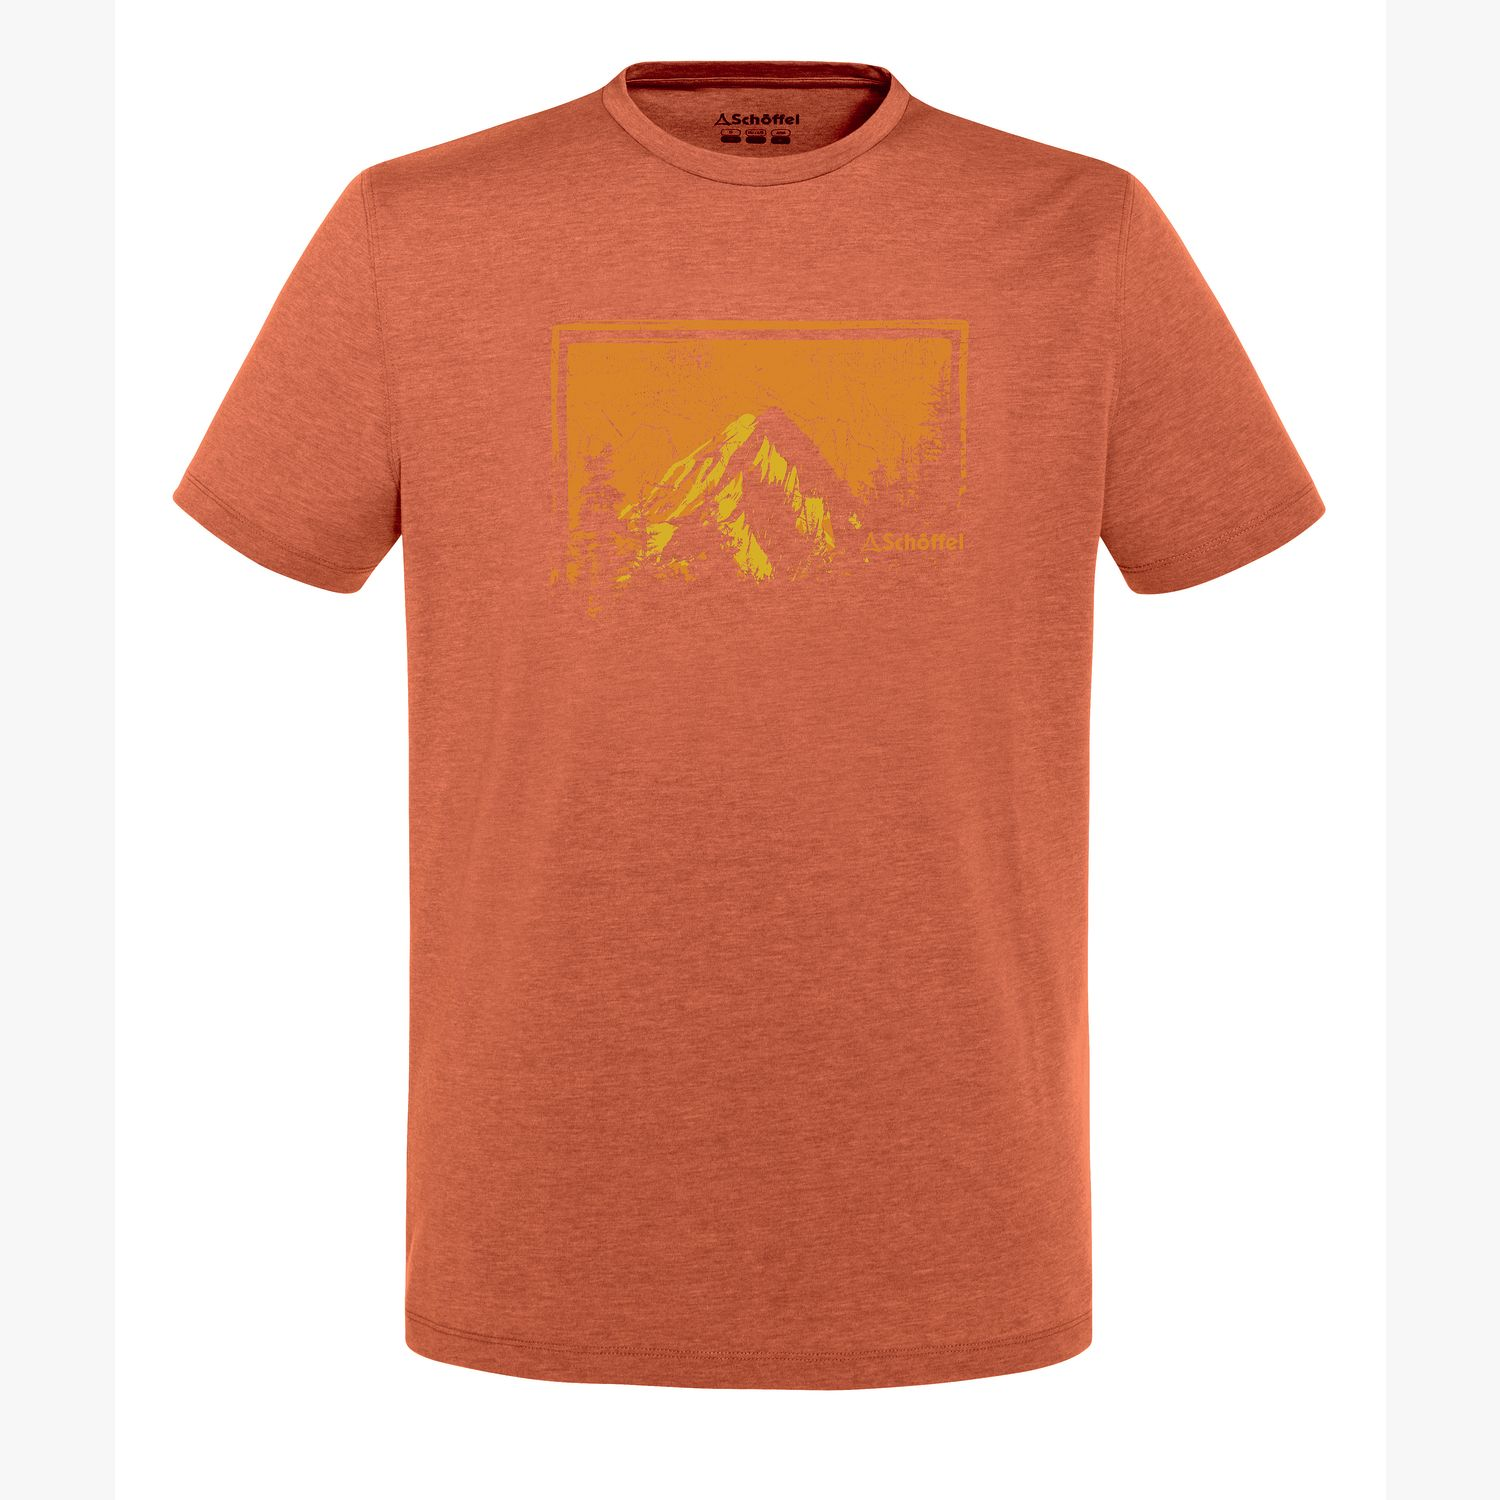 wholesale dealer low priced special section T Shirt Naeba M rot | Schöffel